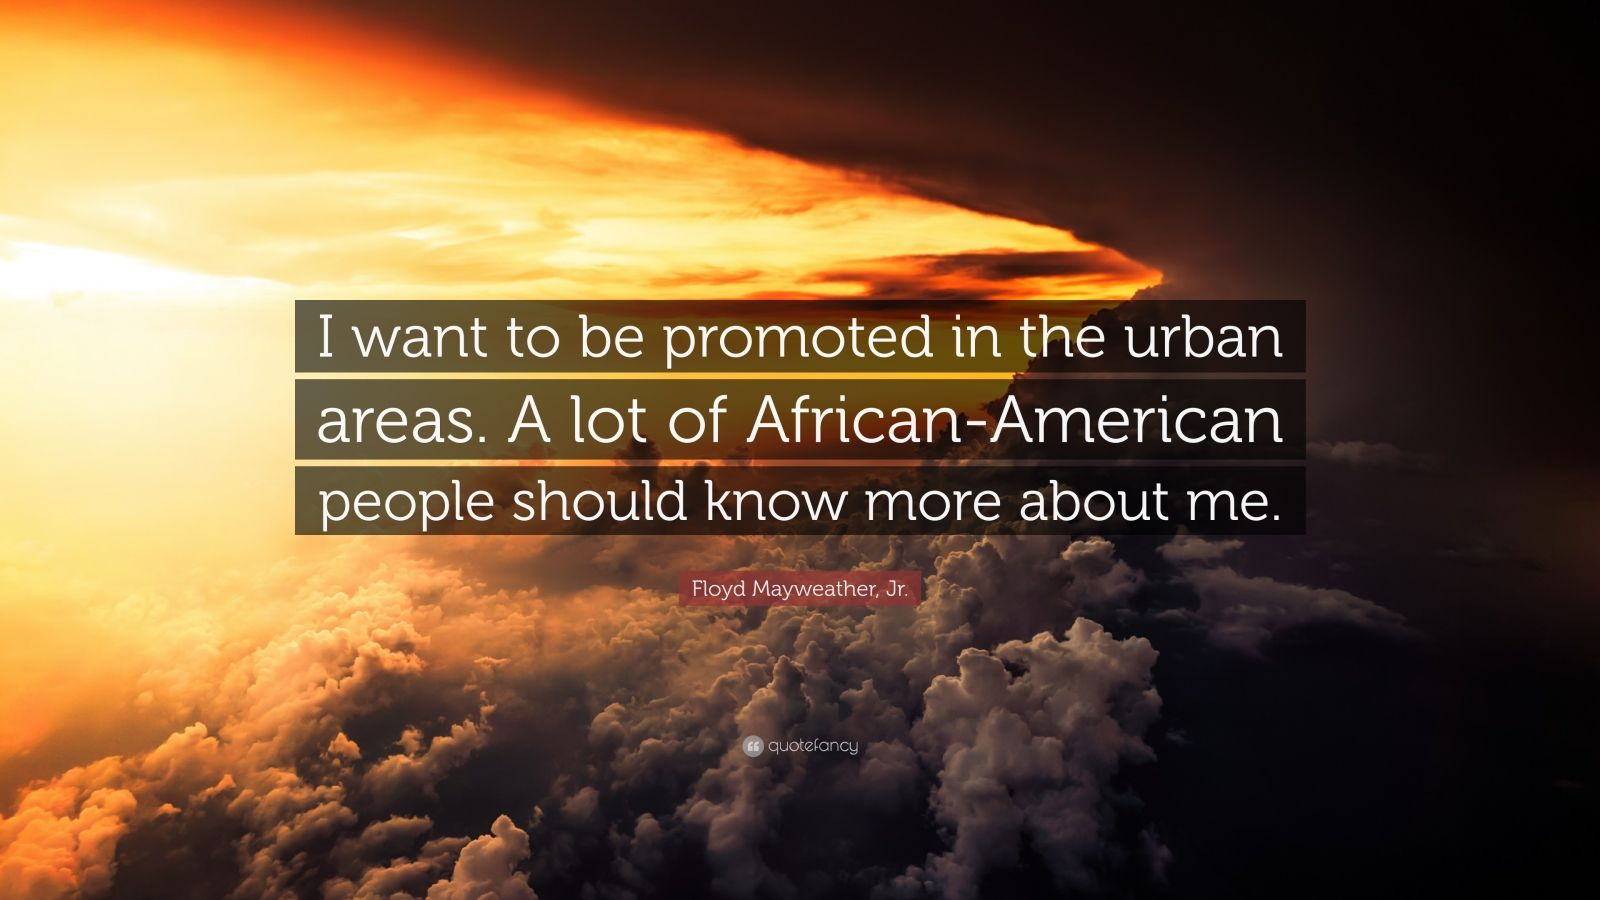 """Floyd Mayweather, Jr. Quote: """"I want to be promoted in the urban areas. A lot of African-American people should know more about me."""""""